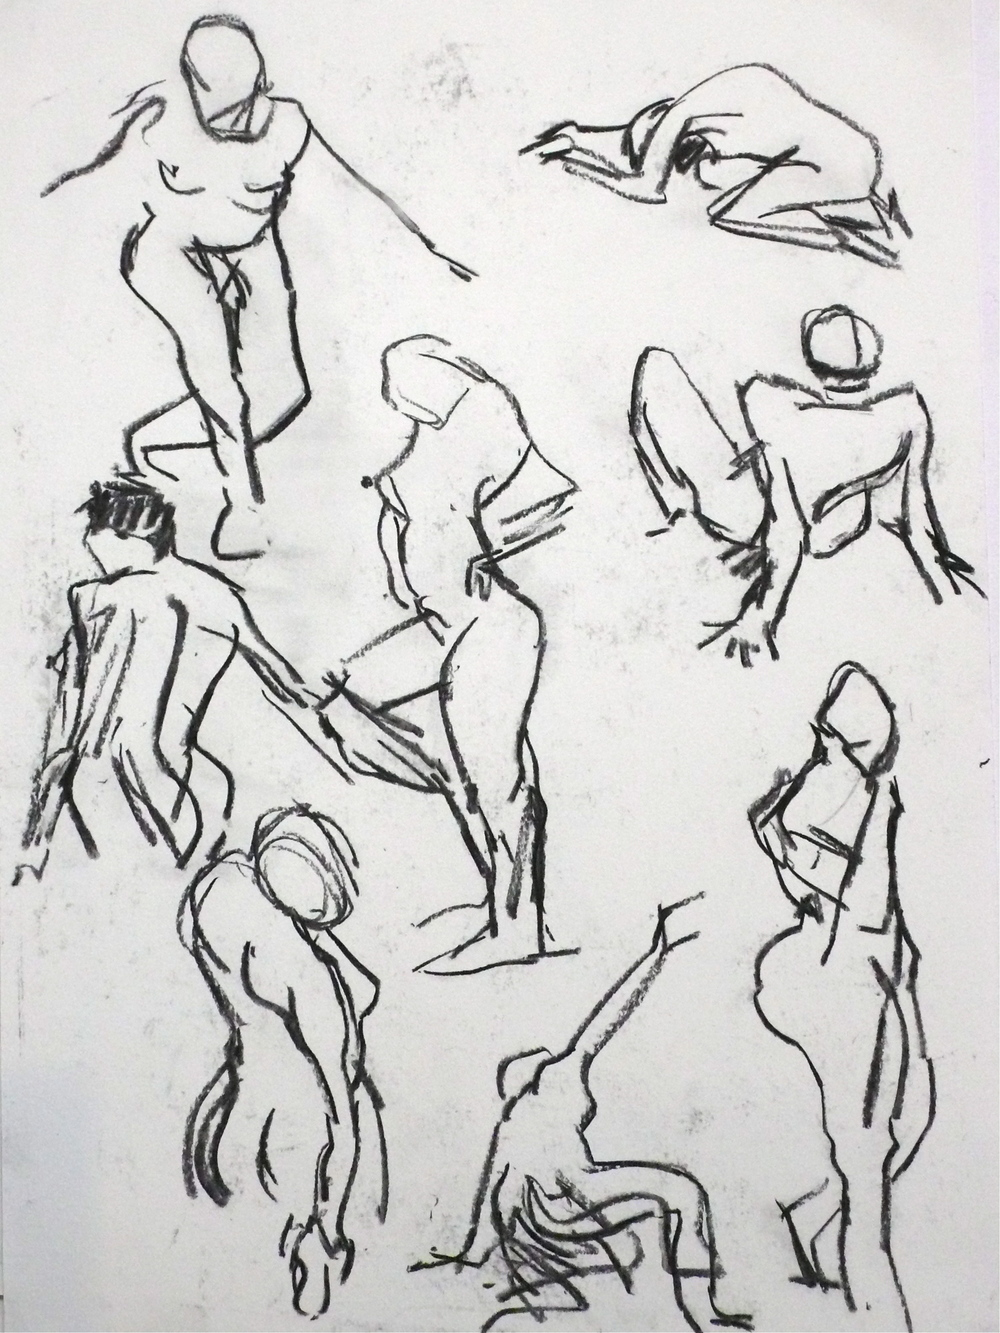 29-june-one-minute-sketches_2756764332_o.jpg